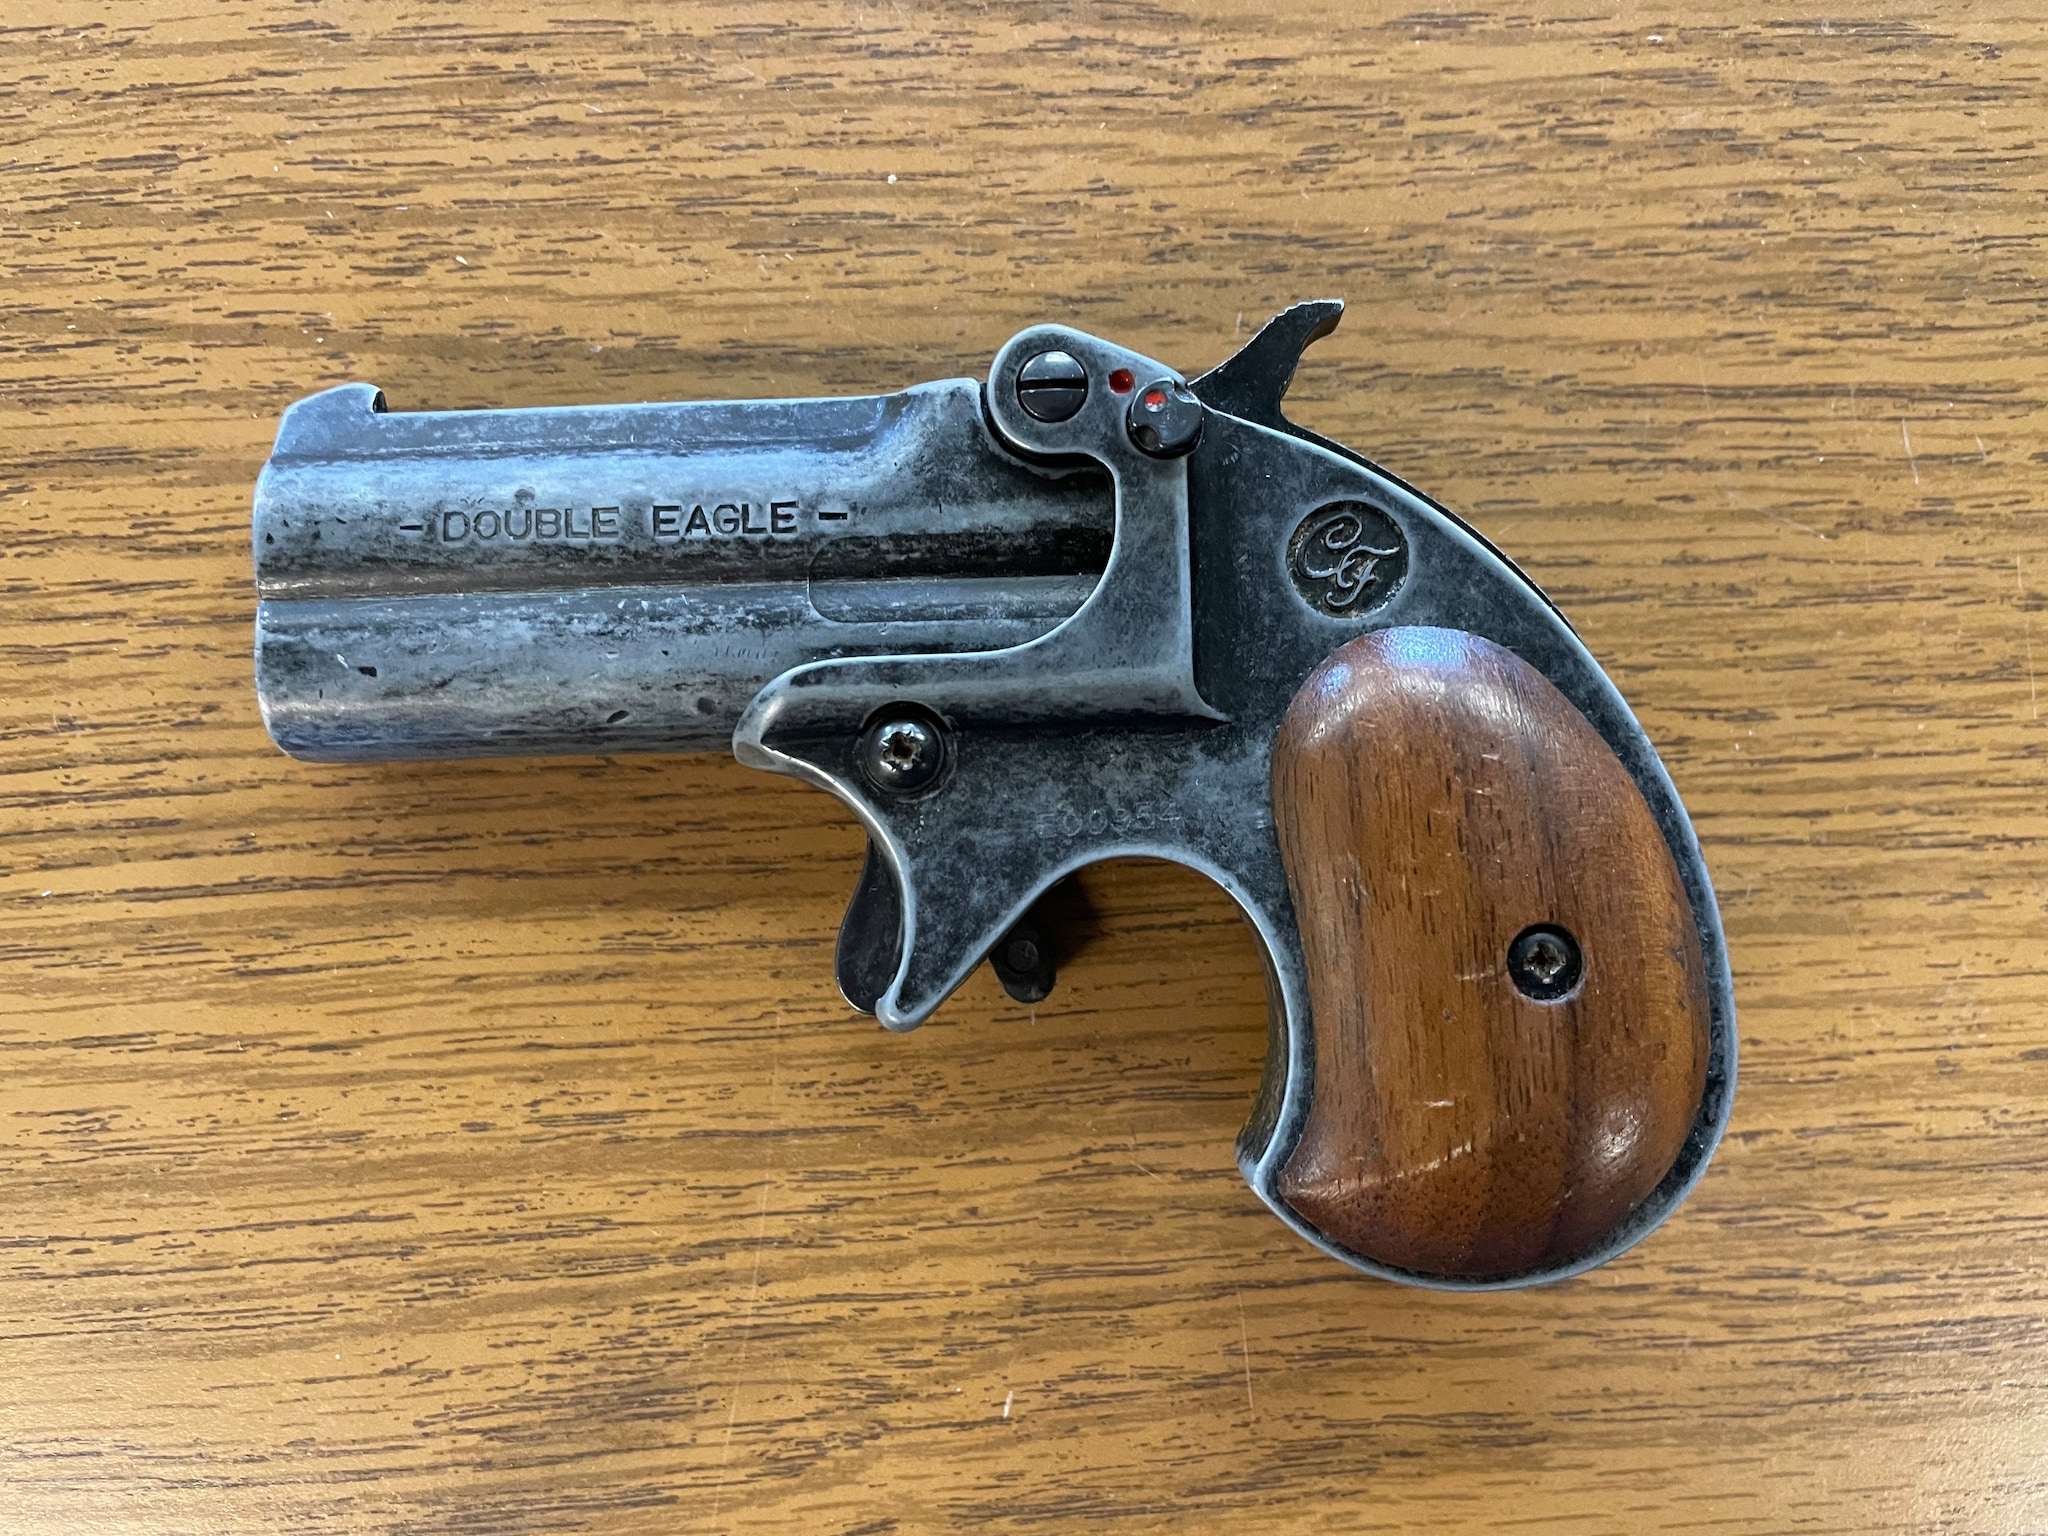 CHIAPPA Double Eagle - Derringer Style